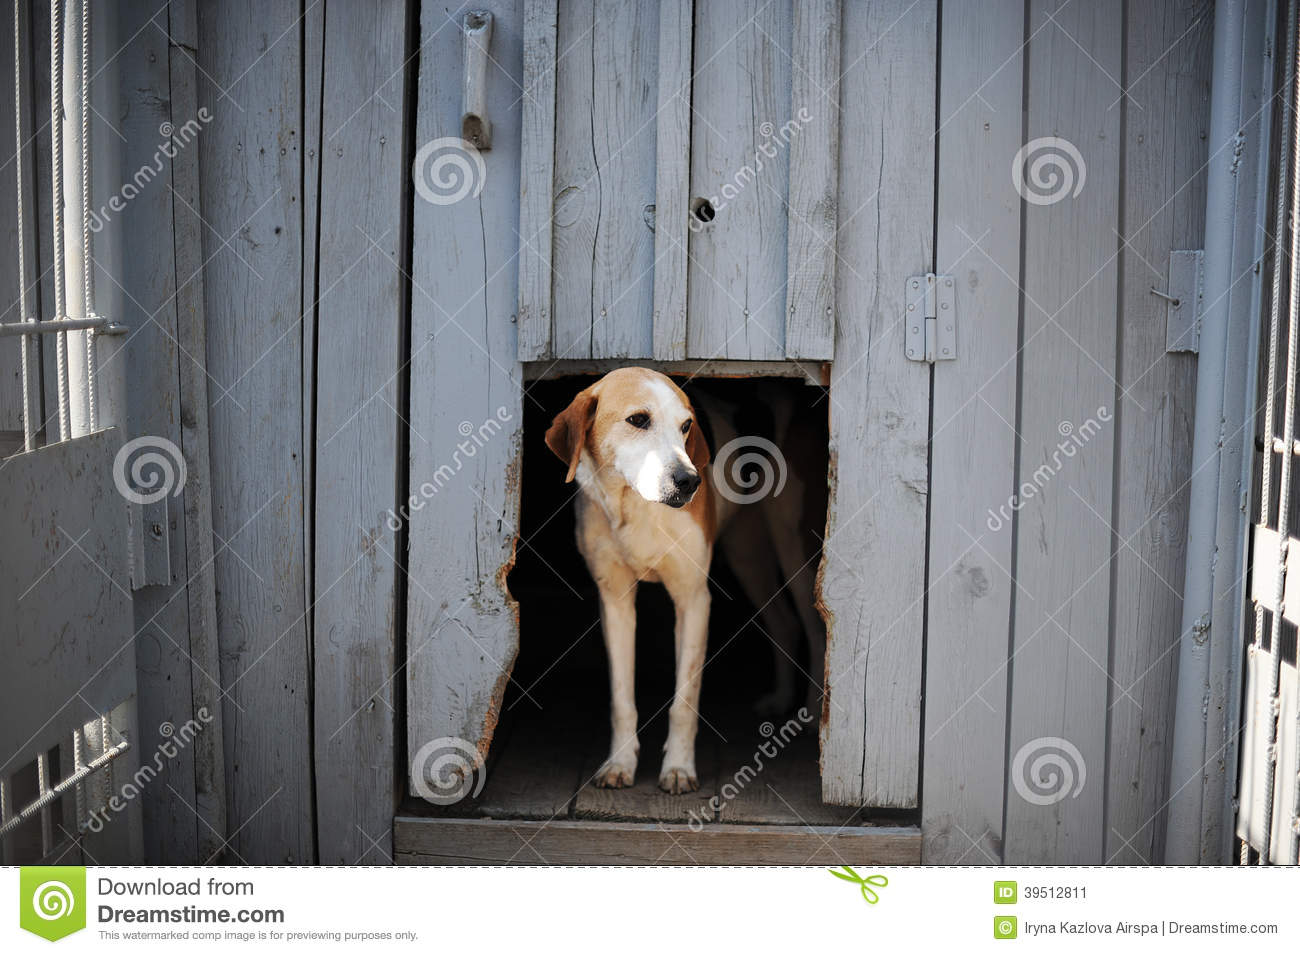 Dog in the doghouse